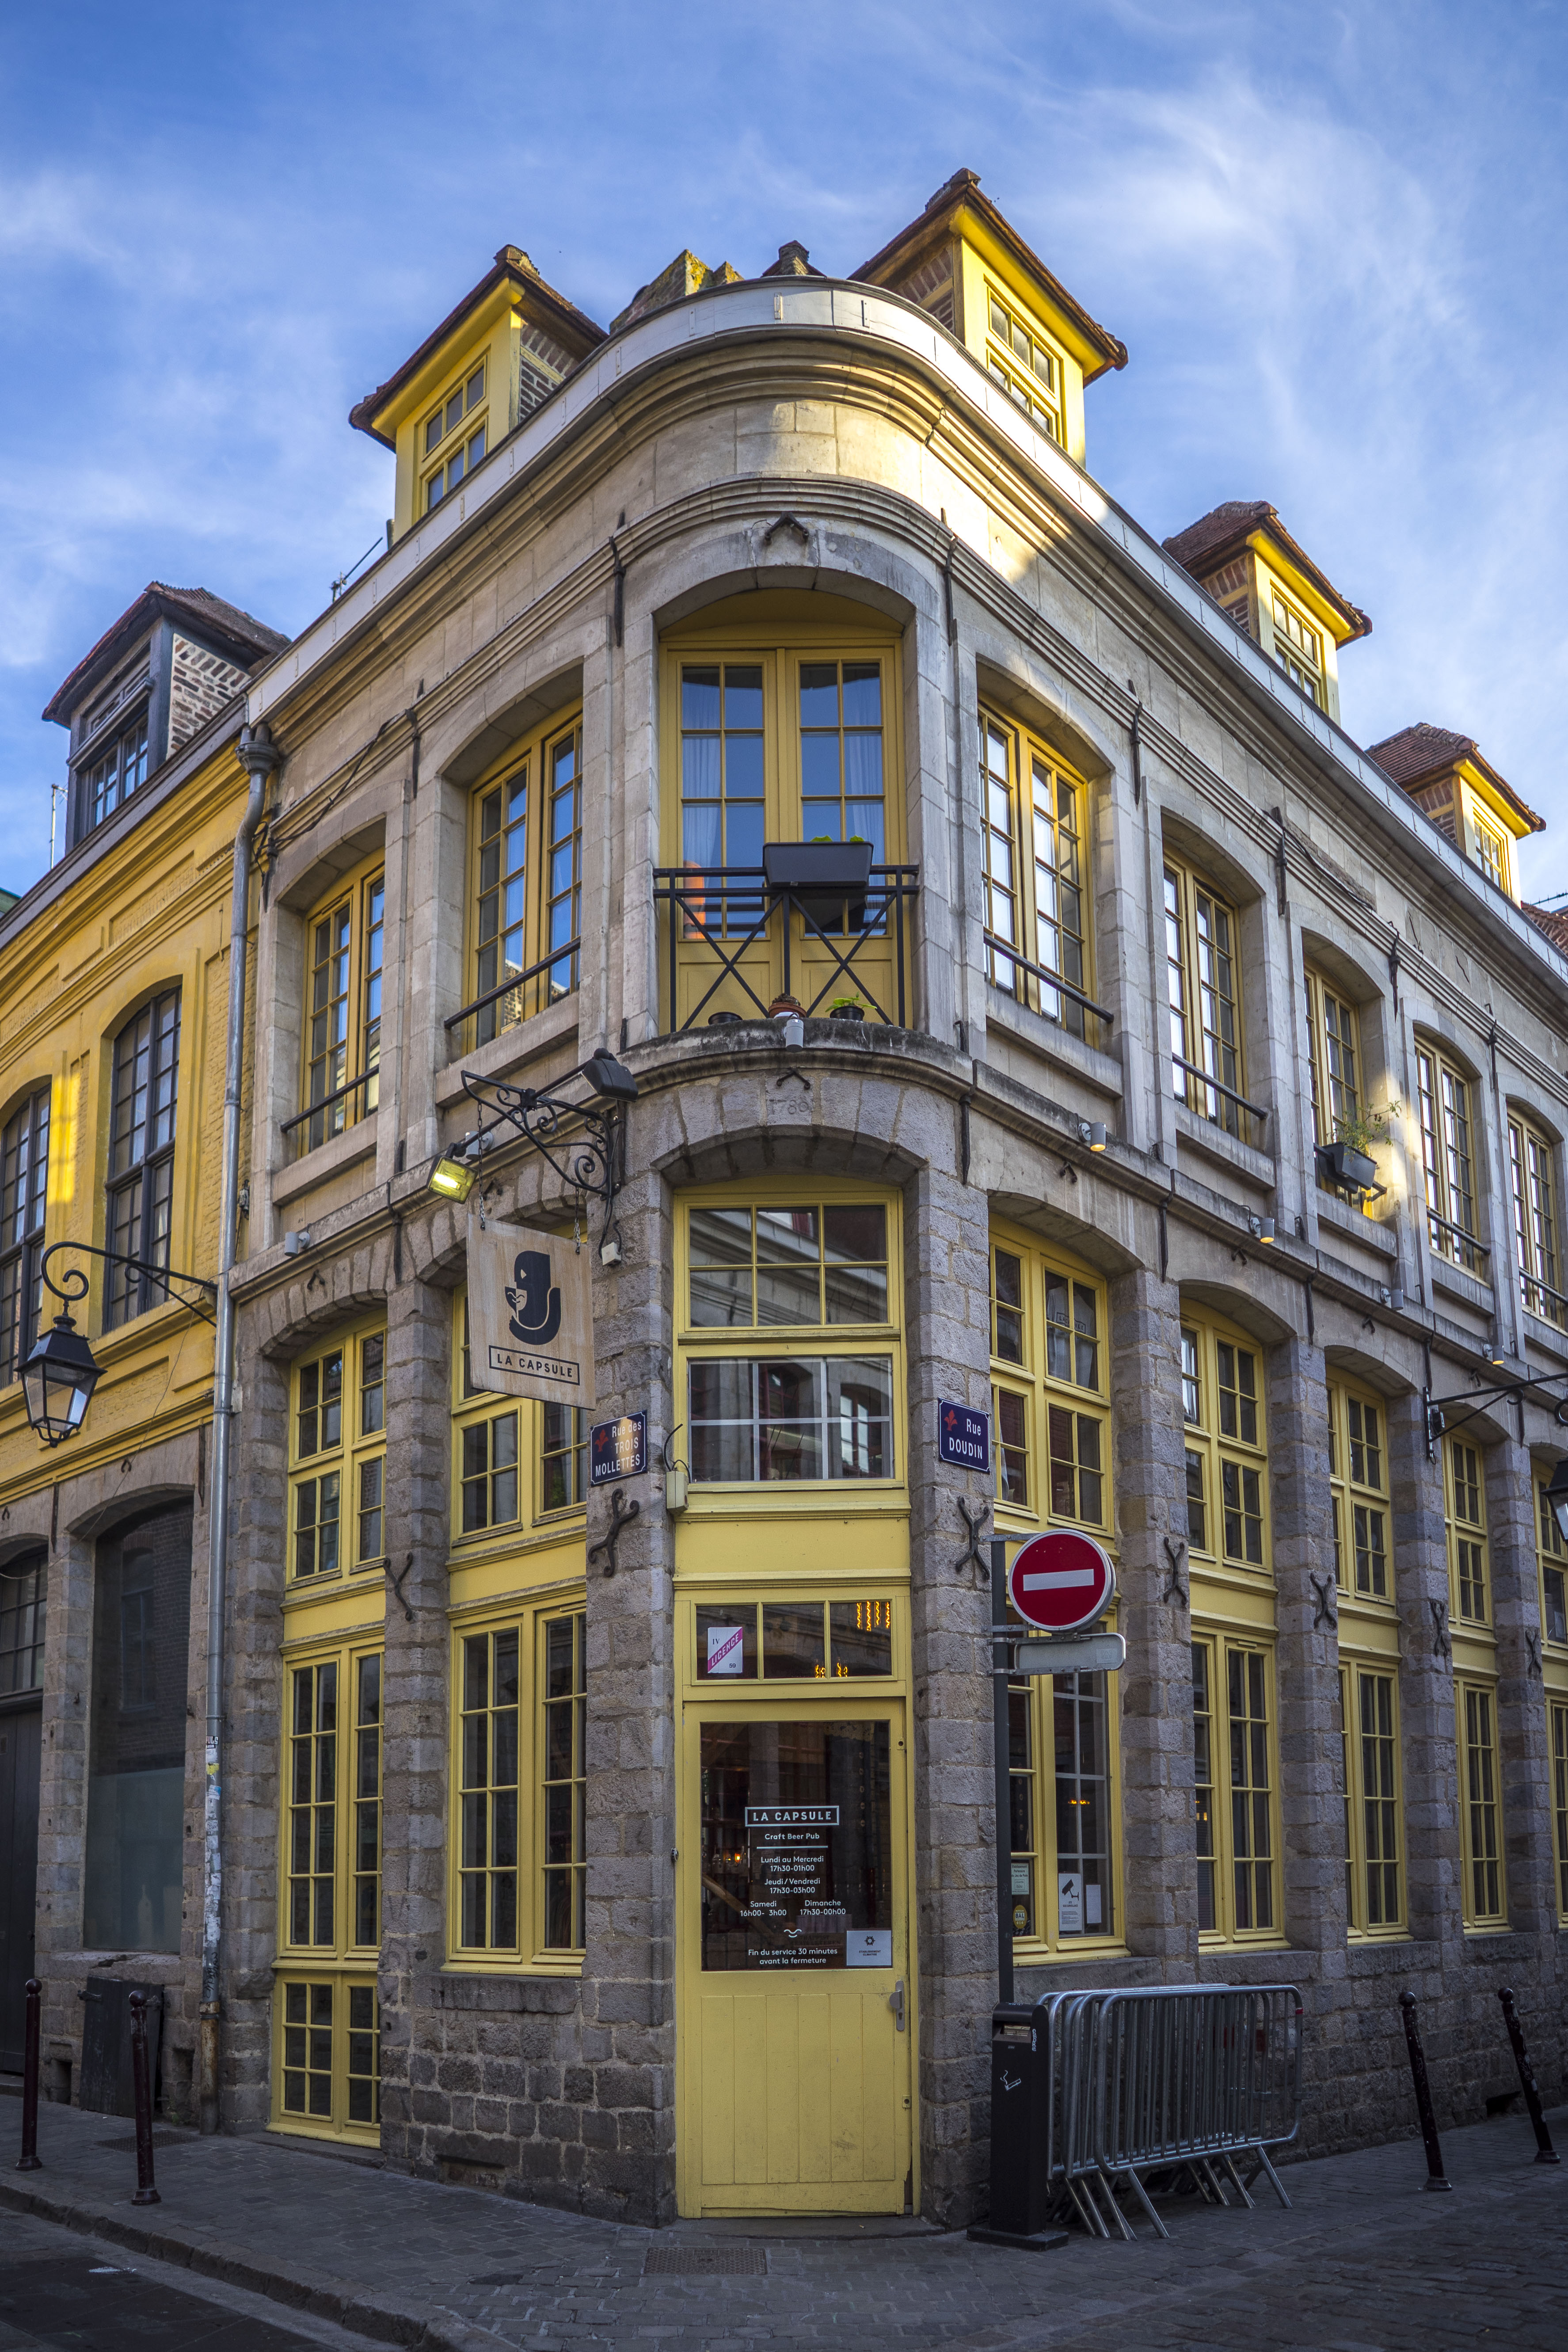 Lille, France - Yellow doors and windows